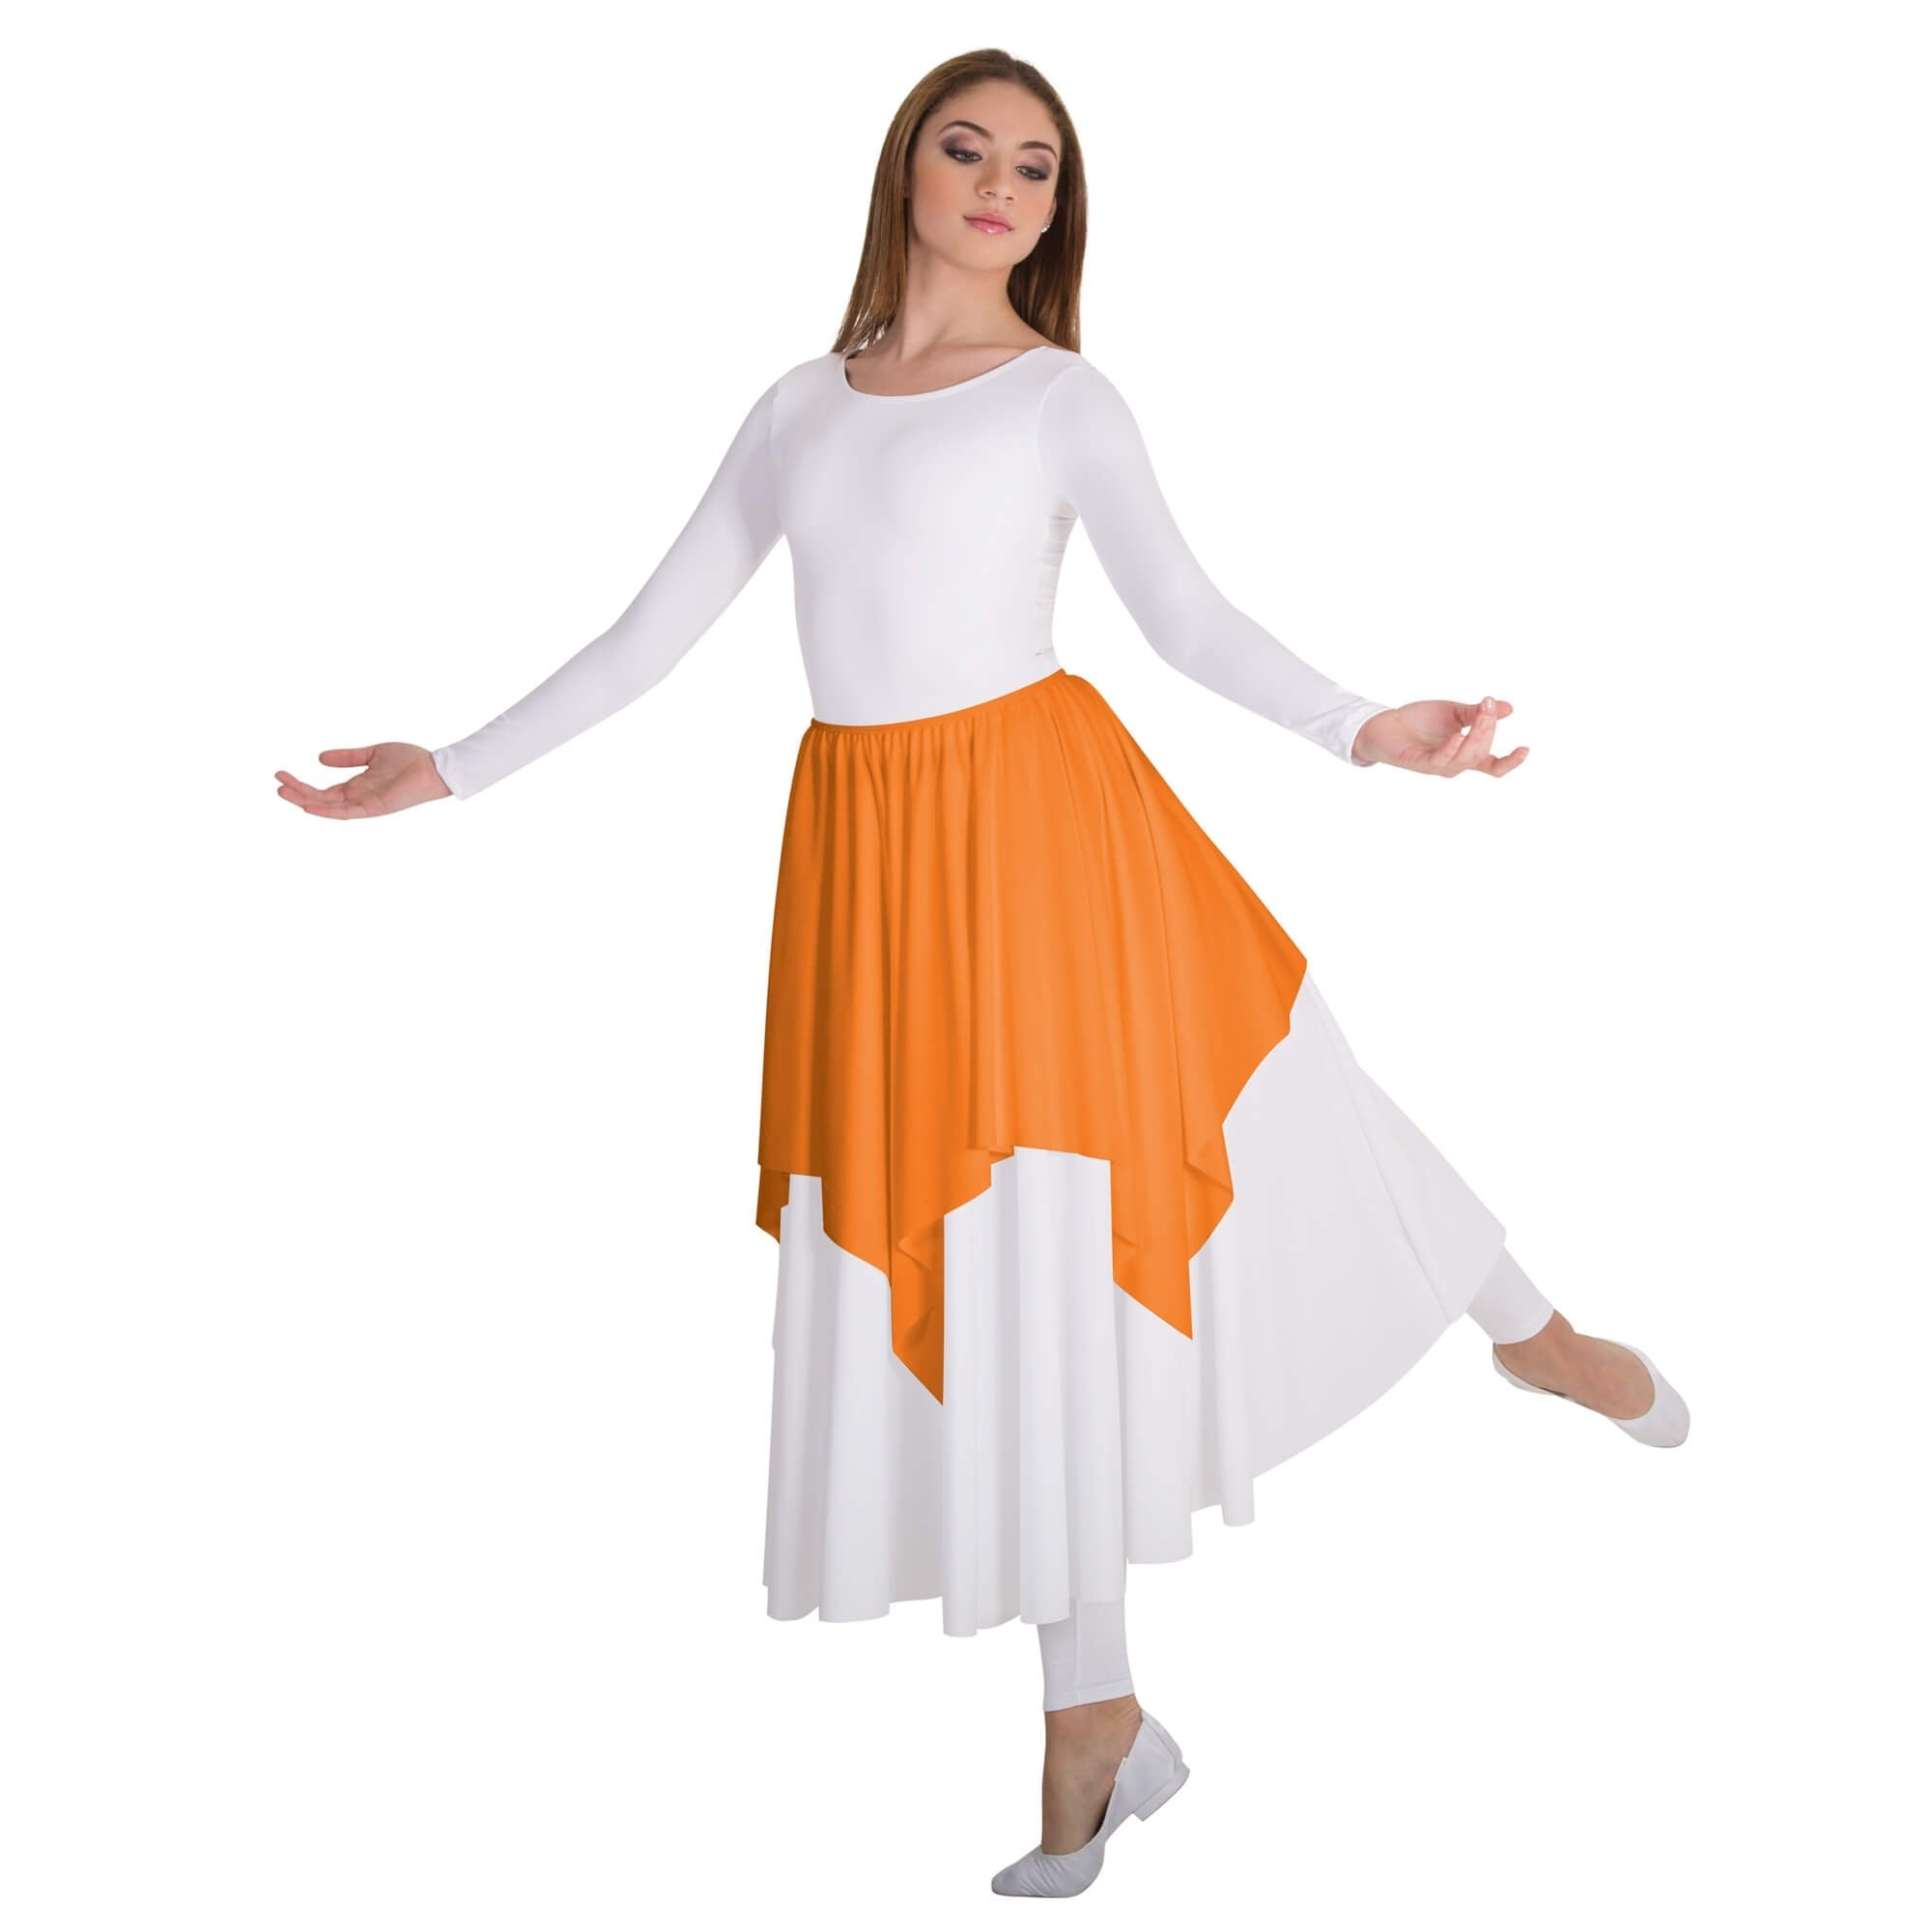 Body Wrappers Liturgical Dance Handkerchief Hem Skirt/Shoulder Drape